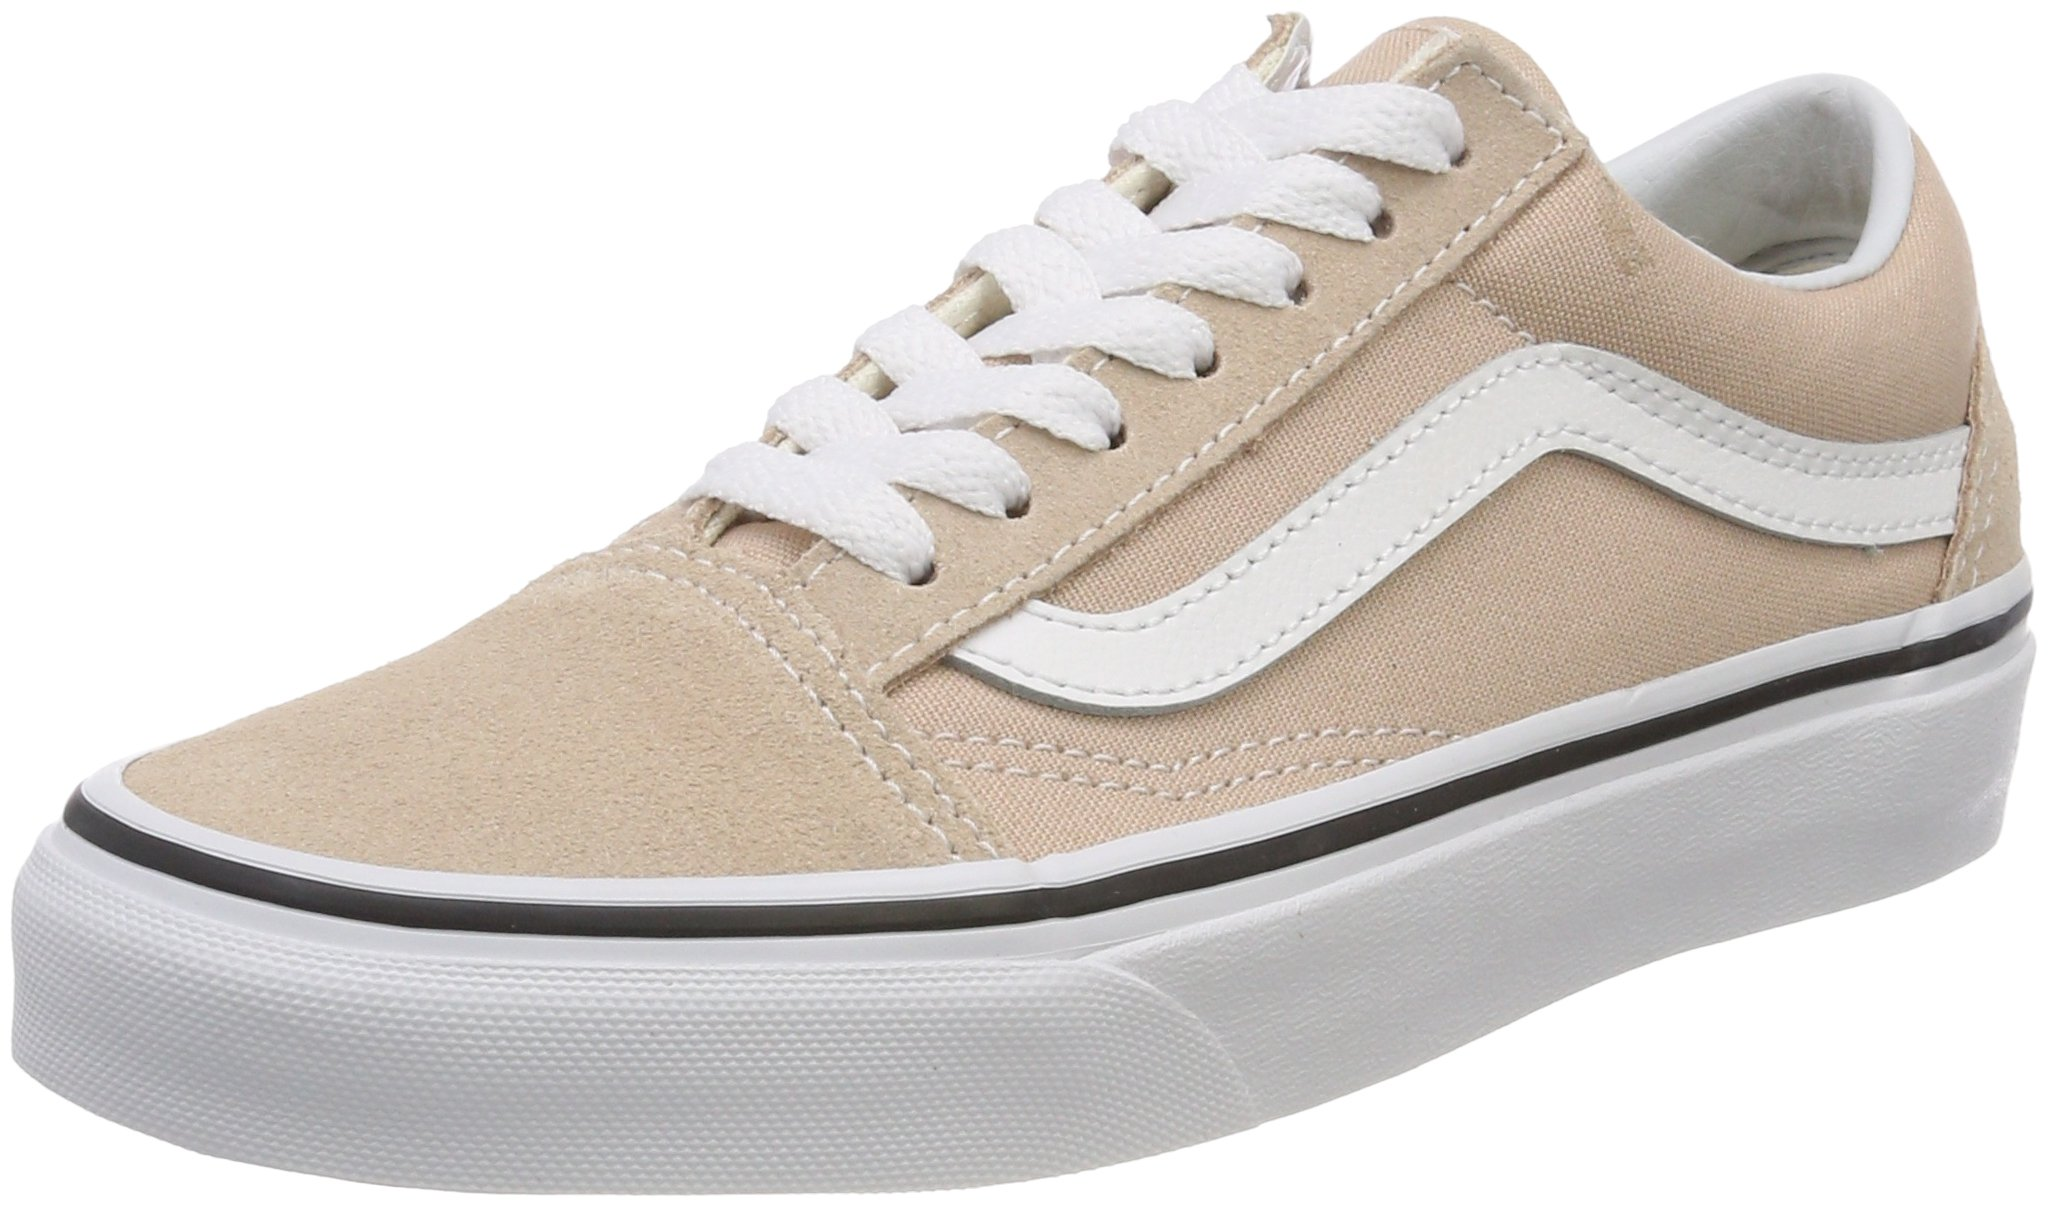 discount super popular sale online Galleon - Vans Women's Old Skool Trainers, Beige (Frappe ...